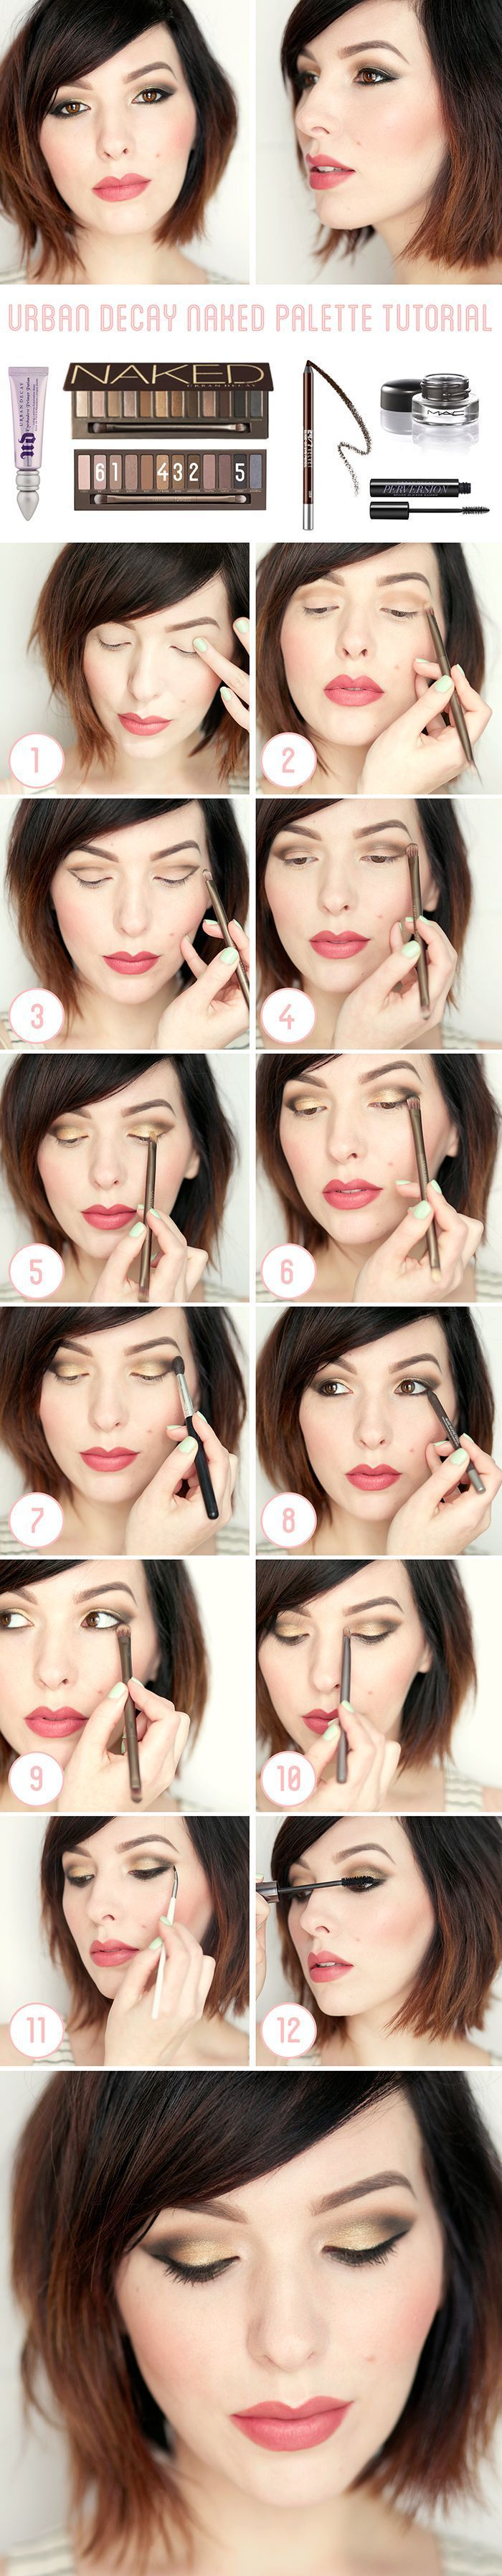 Makeup Monday: Urban Decay Naked Palette Tutorial